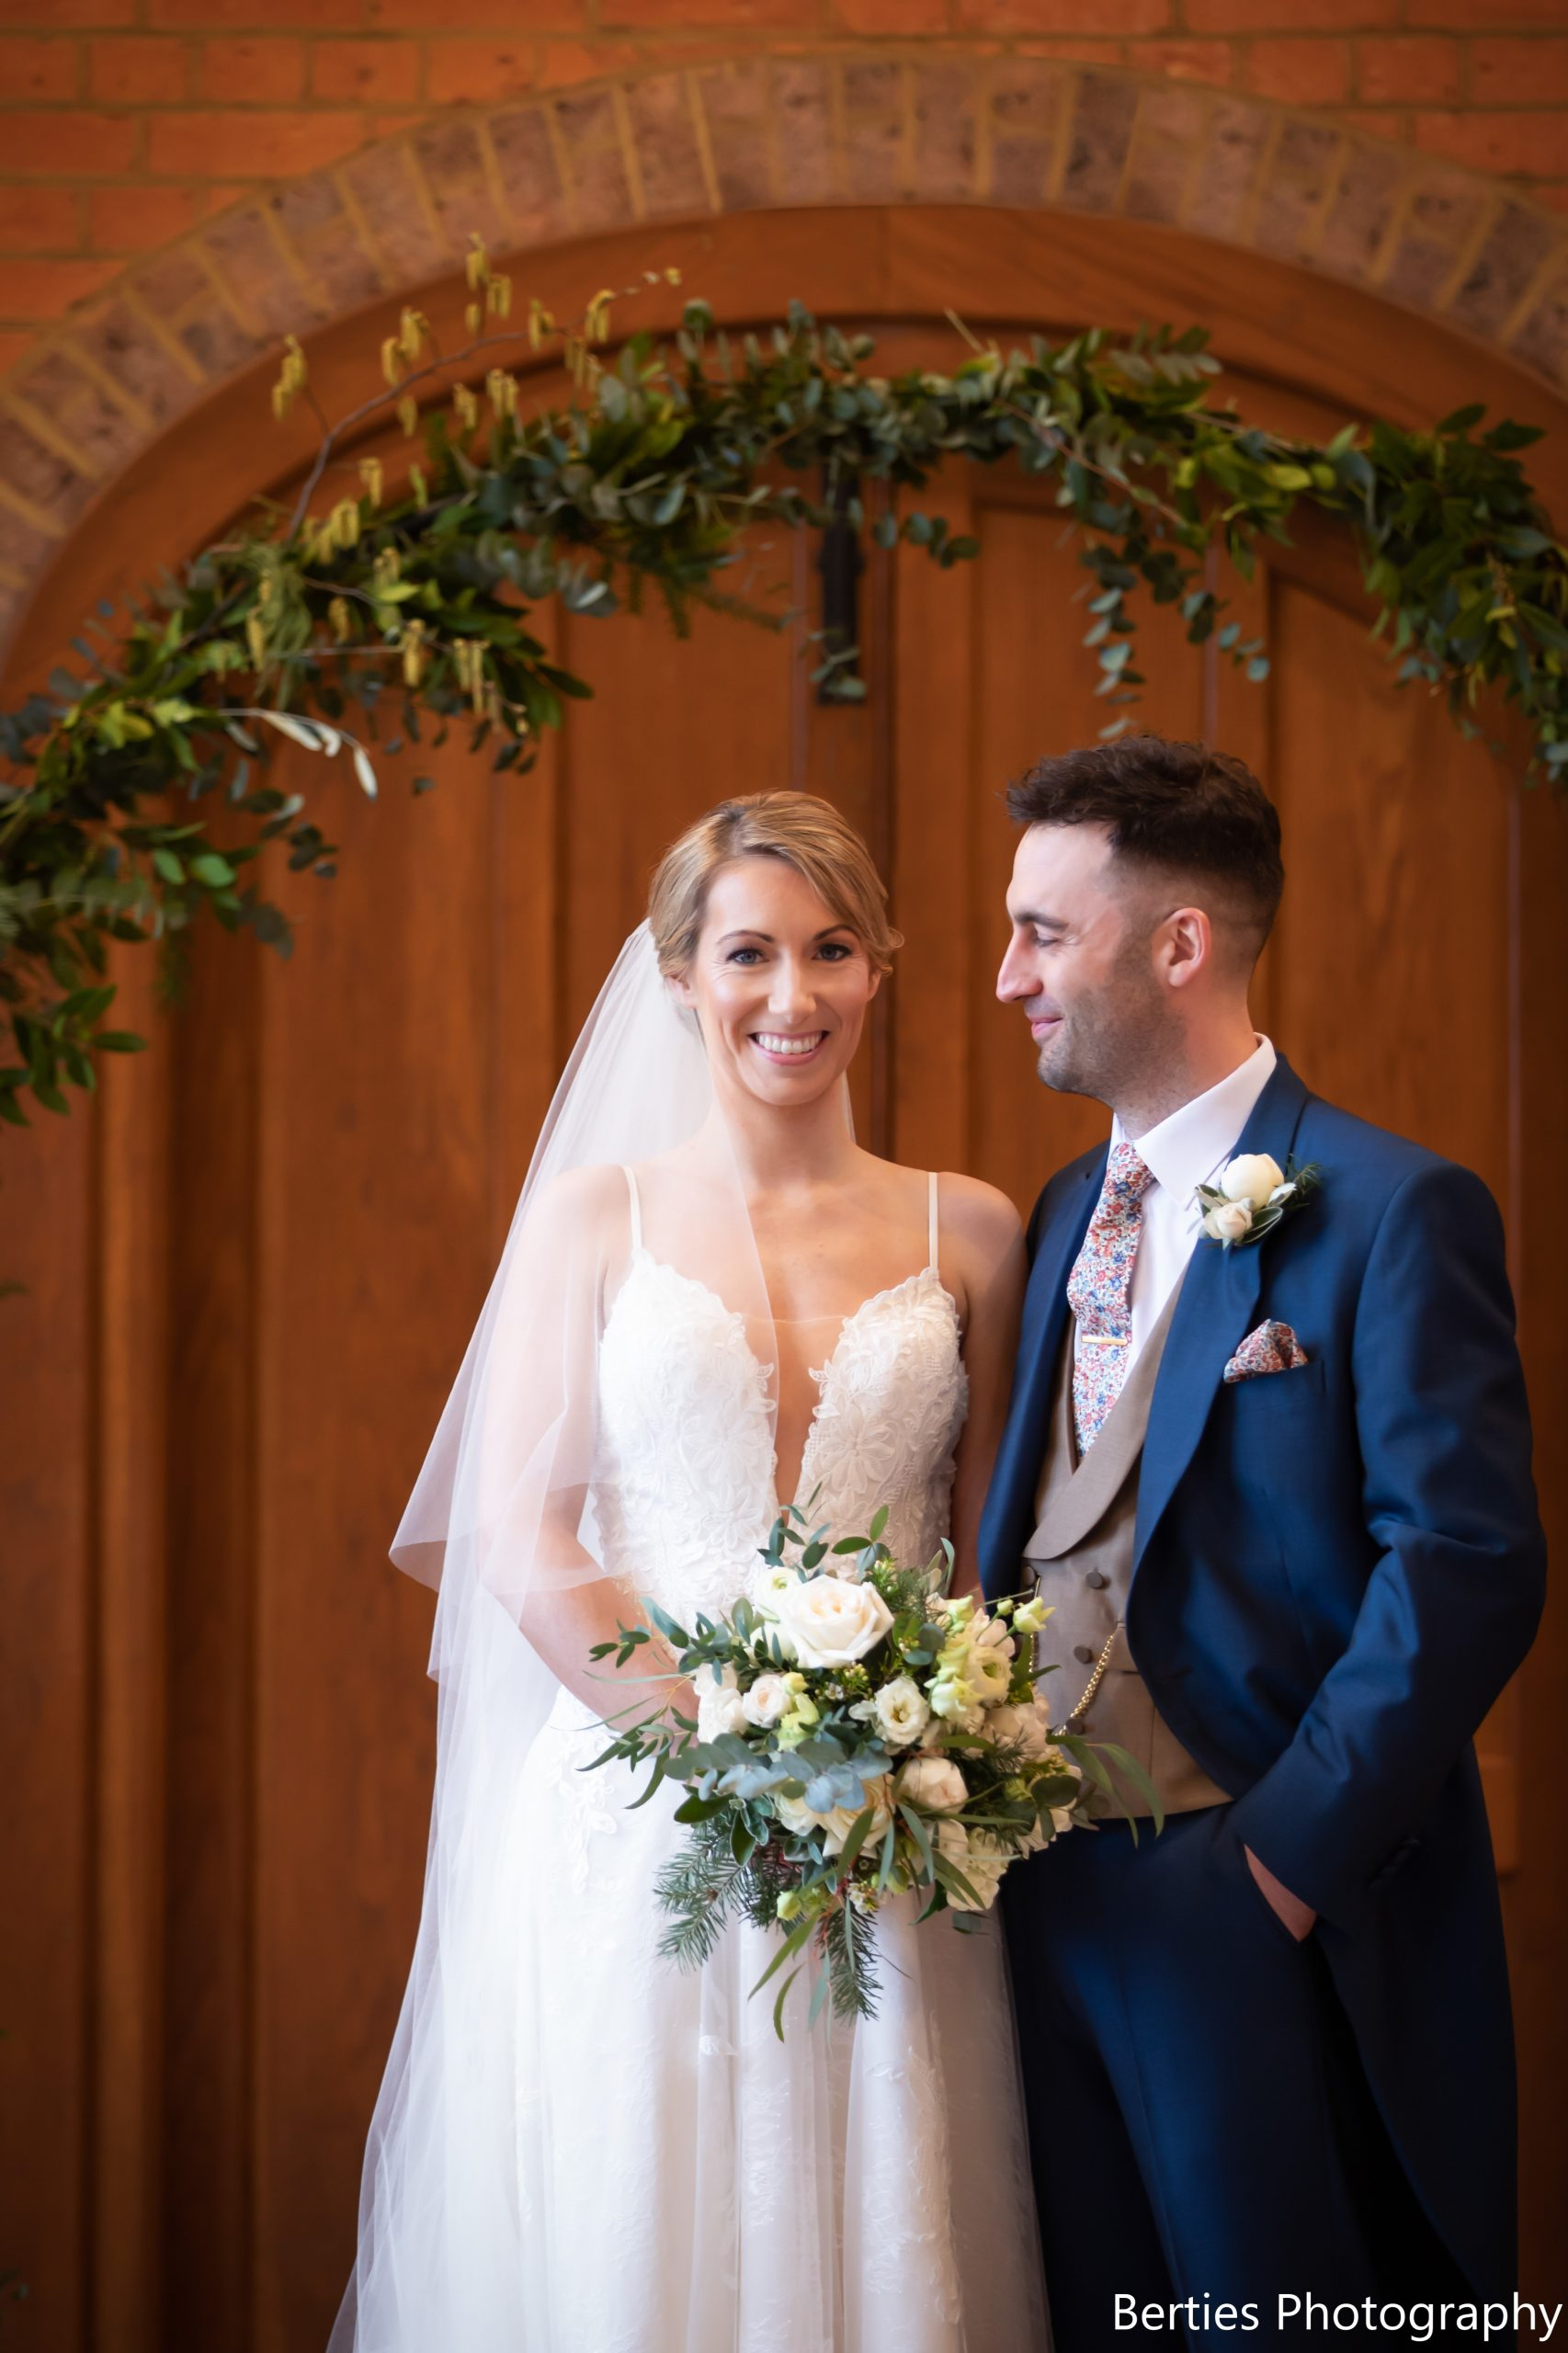 Wedding Bride and Groom in Royal Navy Morning Hire Suit and caramel double breasted waistcoat